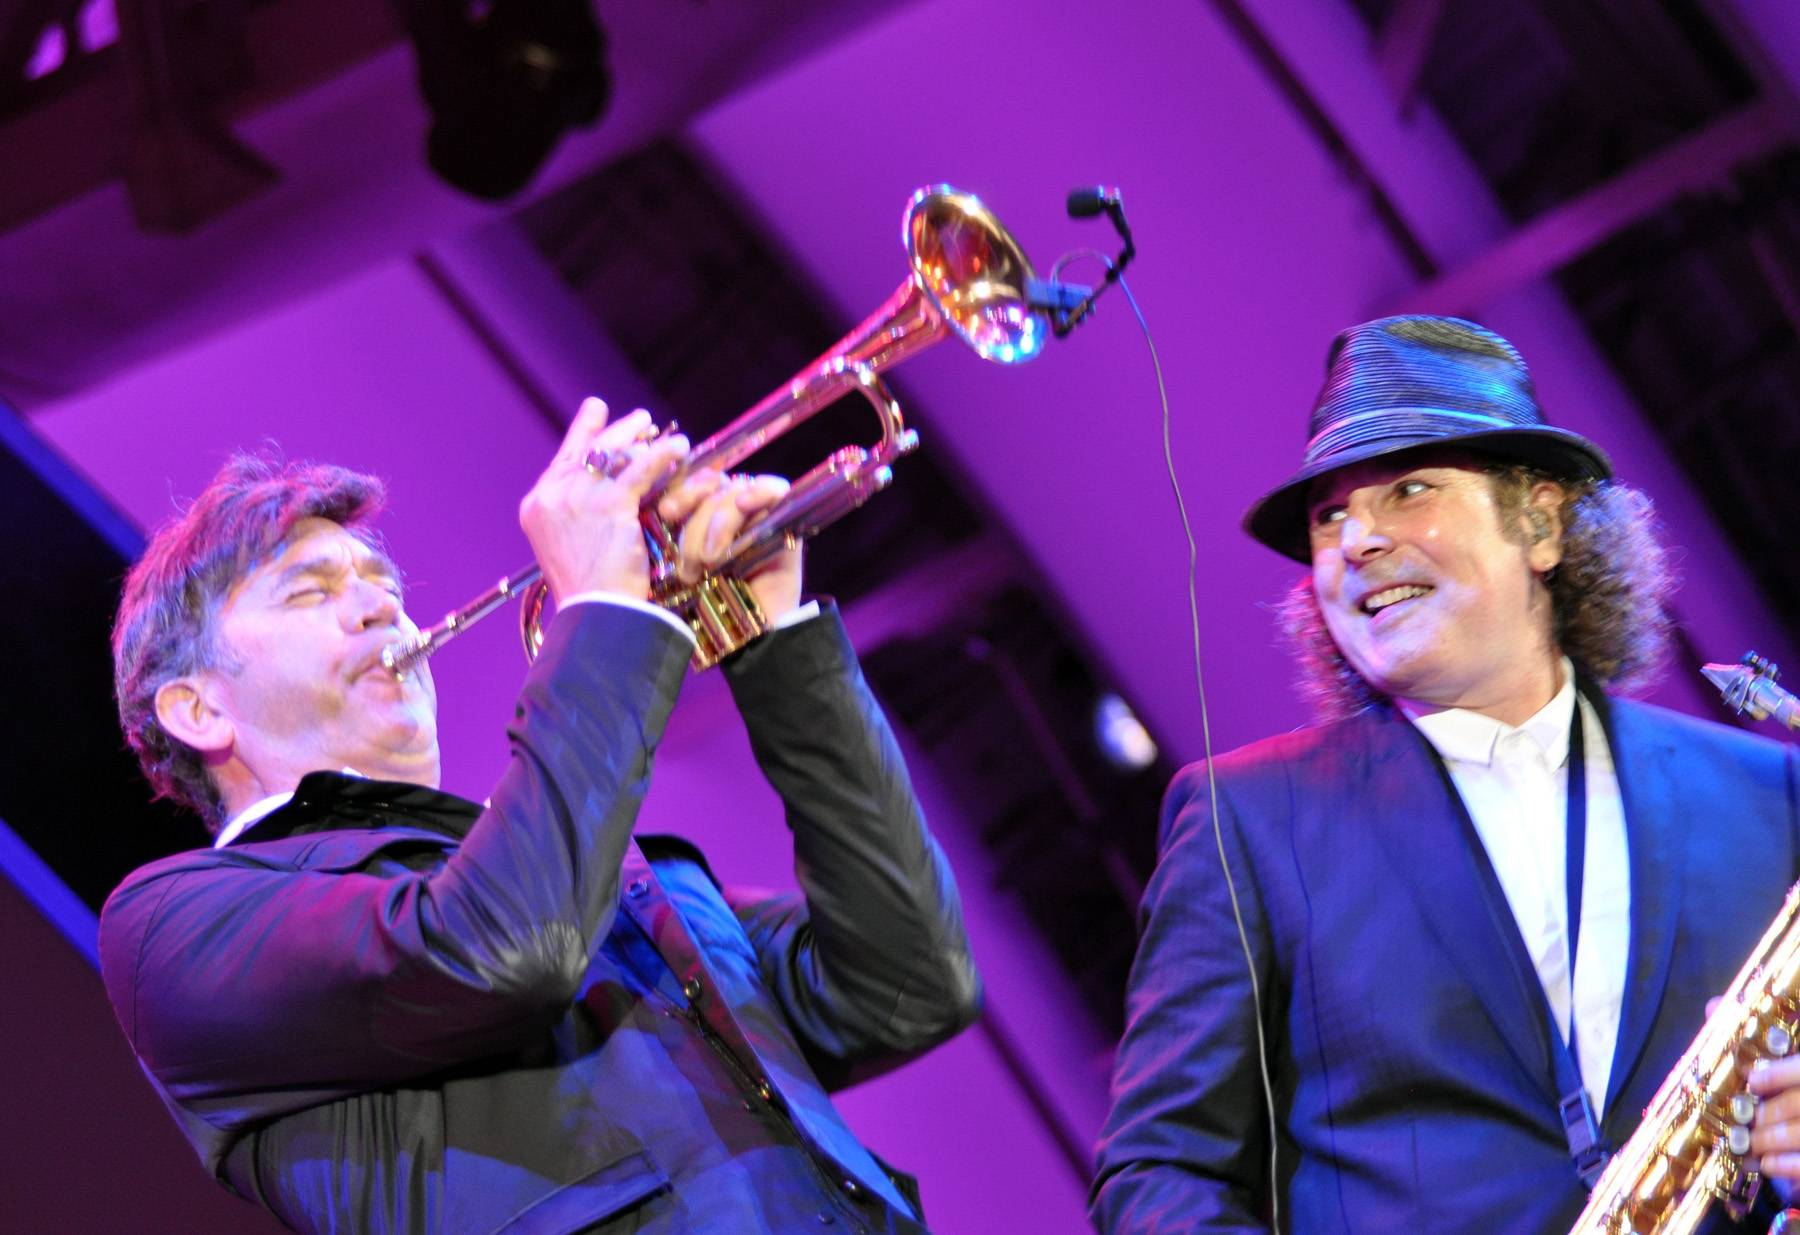 """Best Contemporary Jazz Performance: Boney James feat. Rick Braun - """"Batucada (The Beat)"""" - The one-time Soul Train Awards nominee and acclaimed smooth jazz saxophonist, picks up his second nod with the first single of his 14th studio album, The Beat. (Photo: Peter Sherman/Michael Ochs Archive/Getty Images)"""